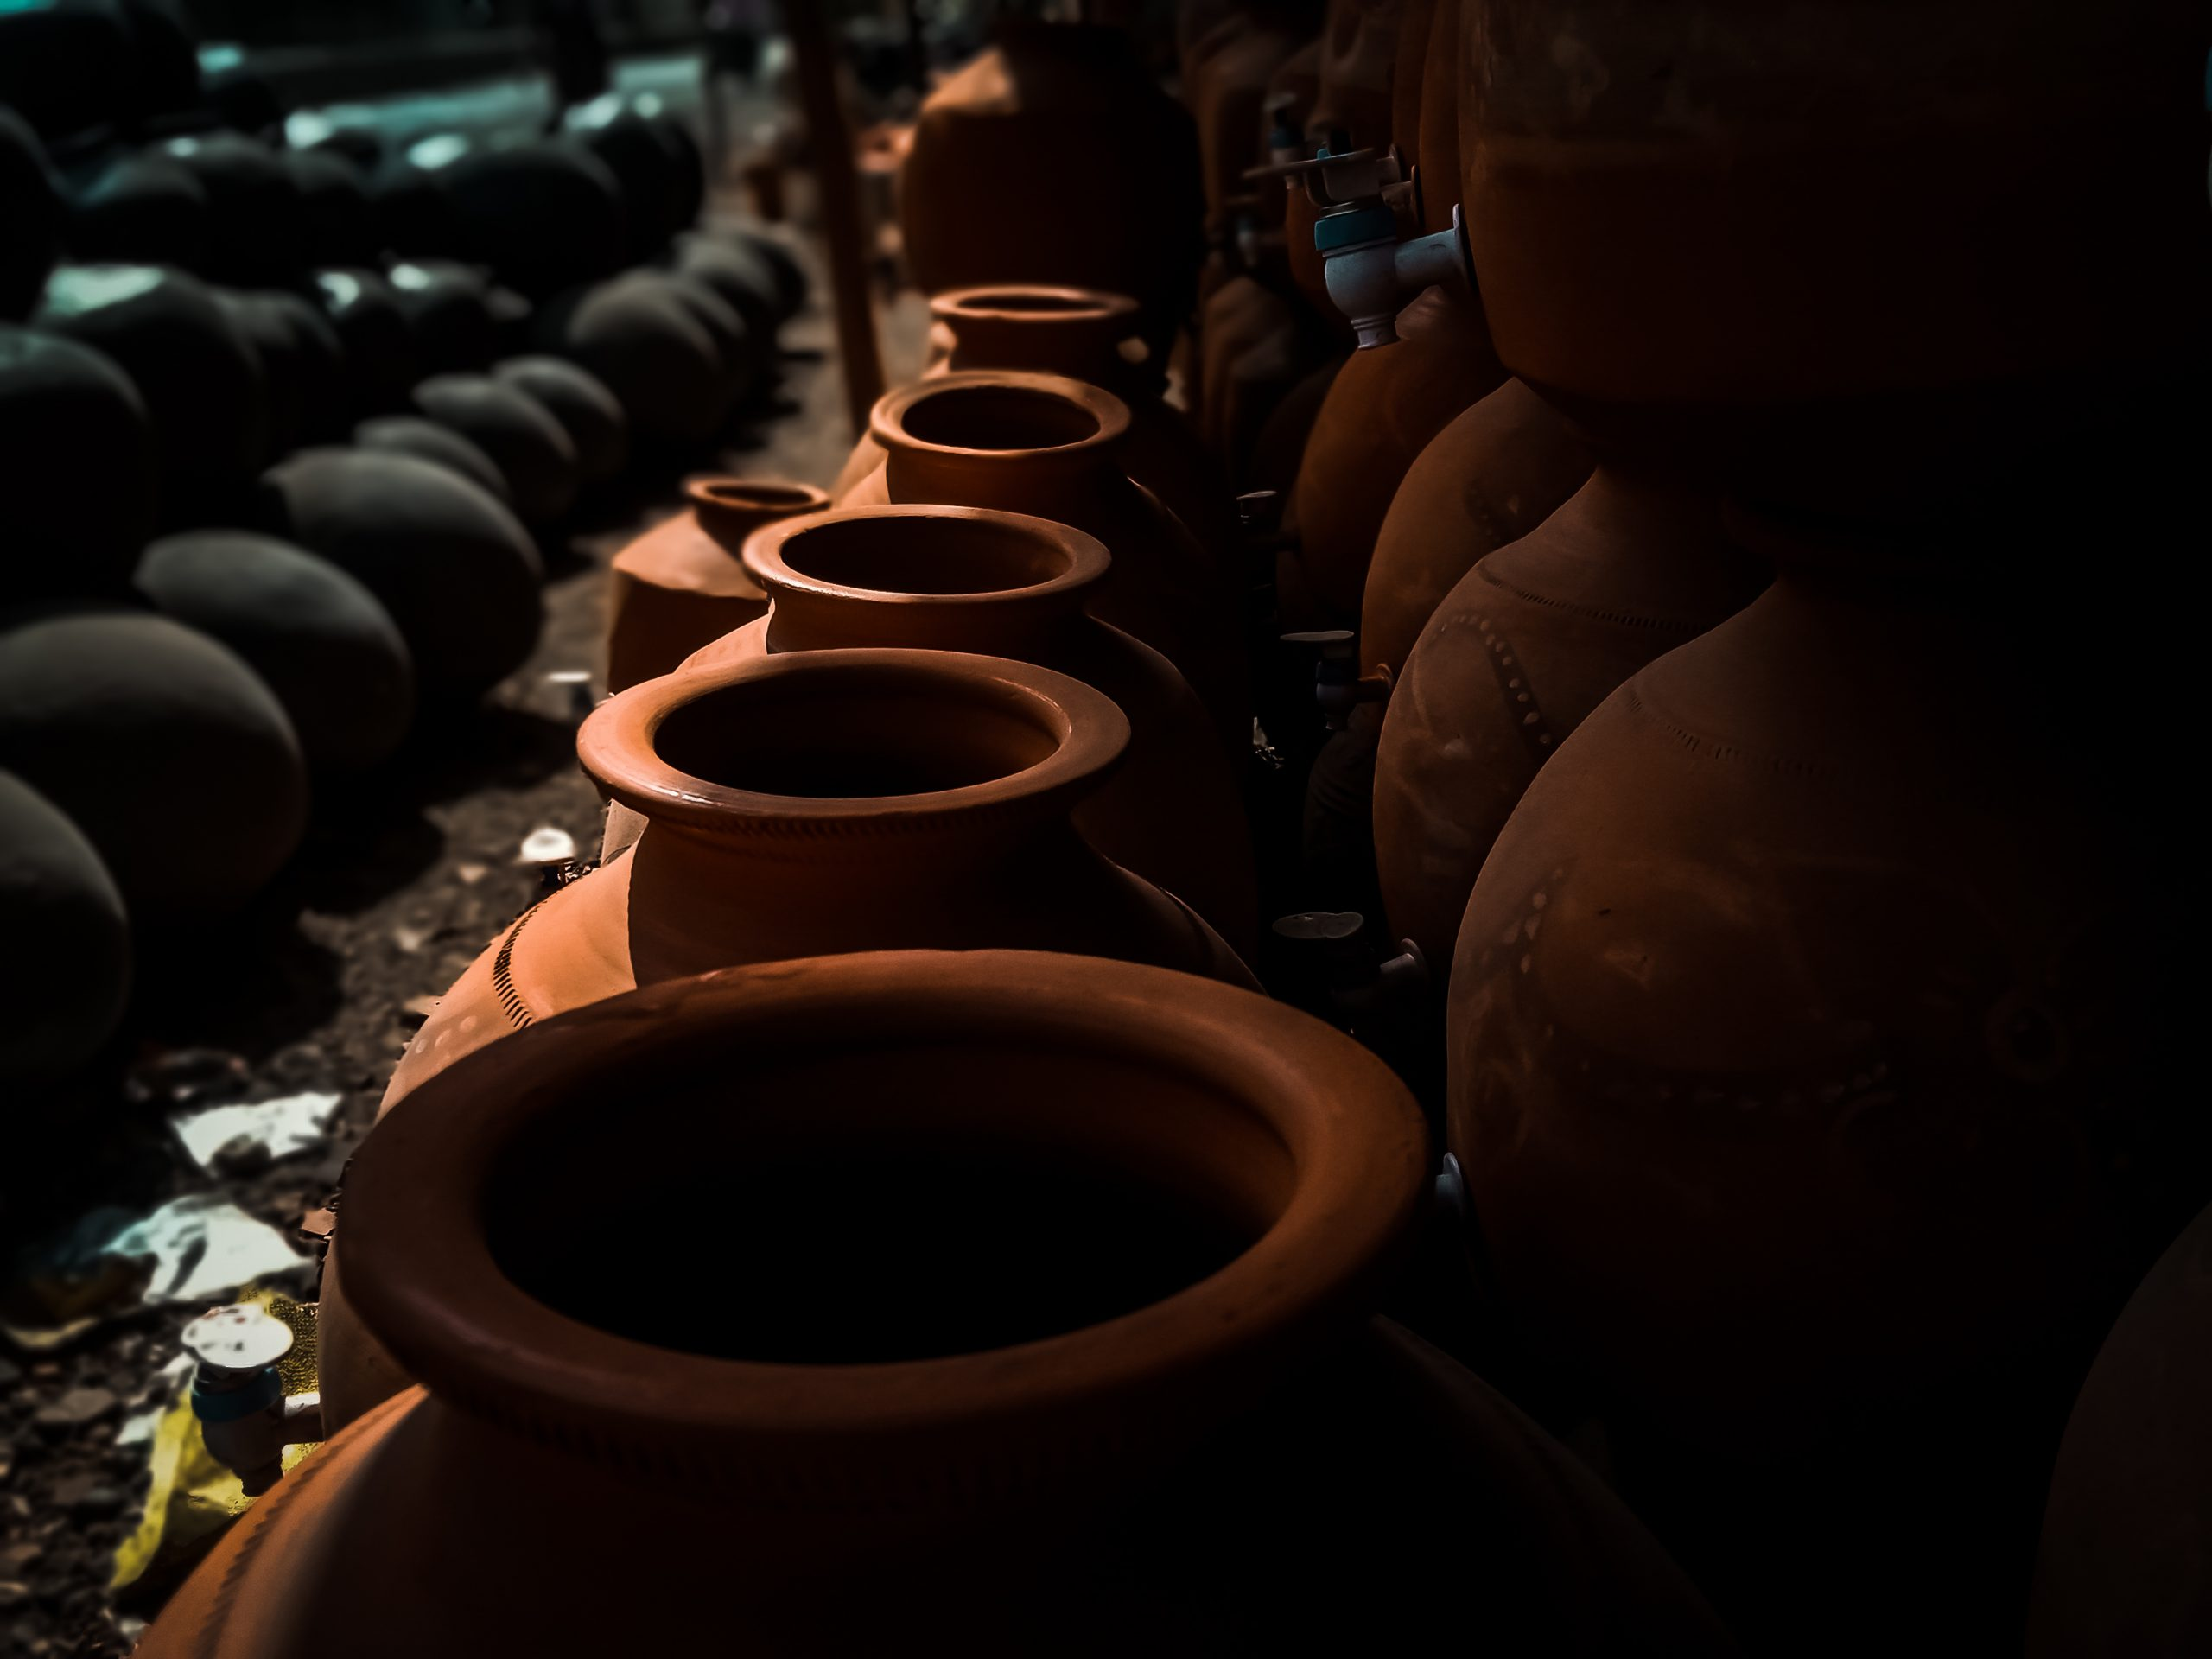 Clay pots in a store